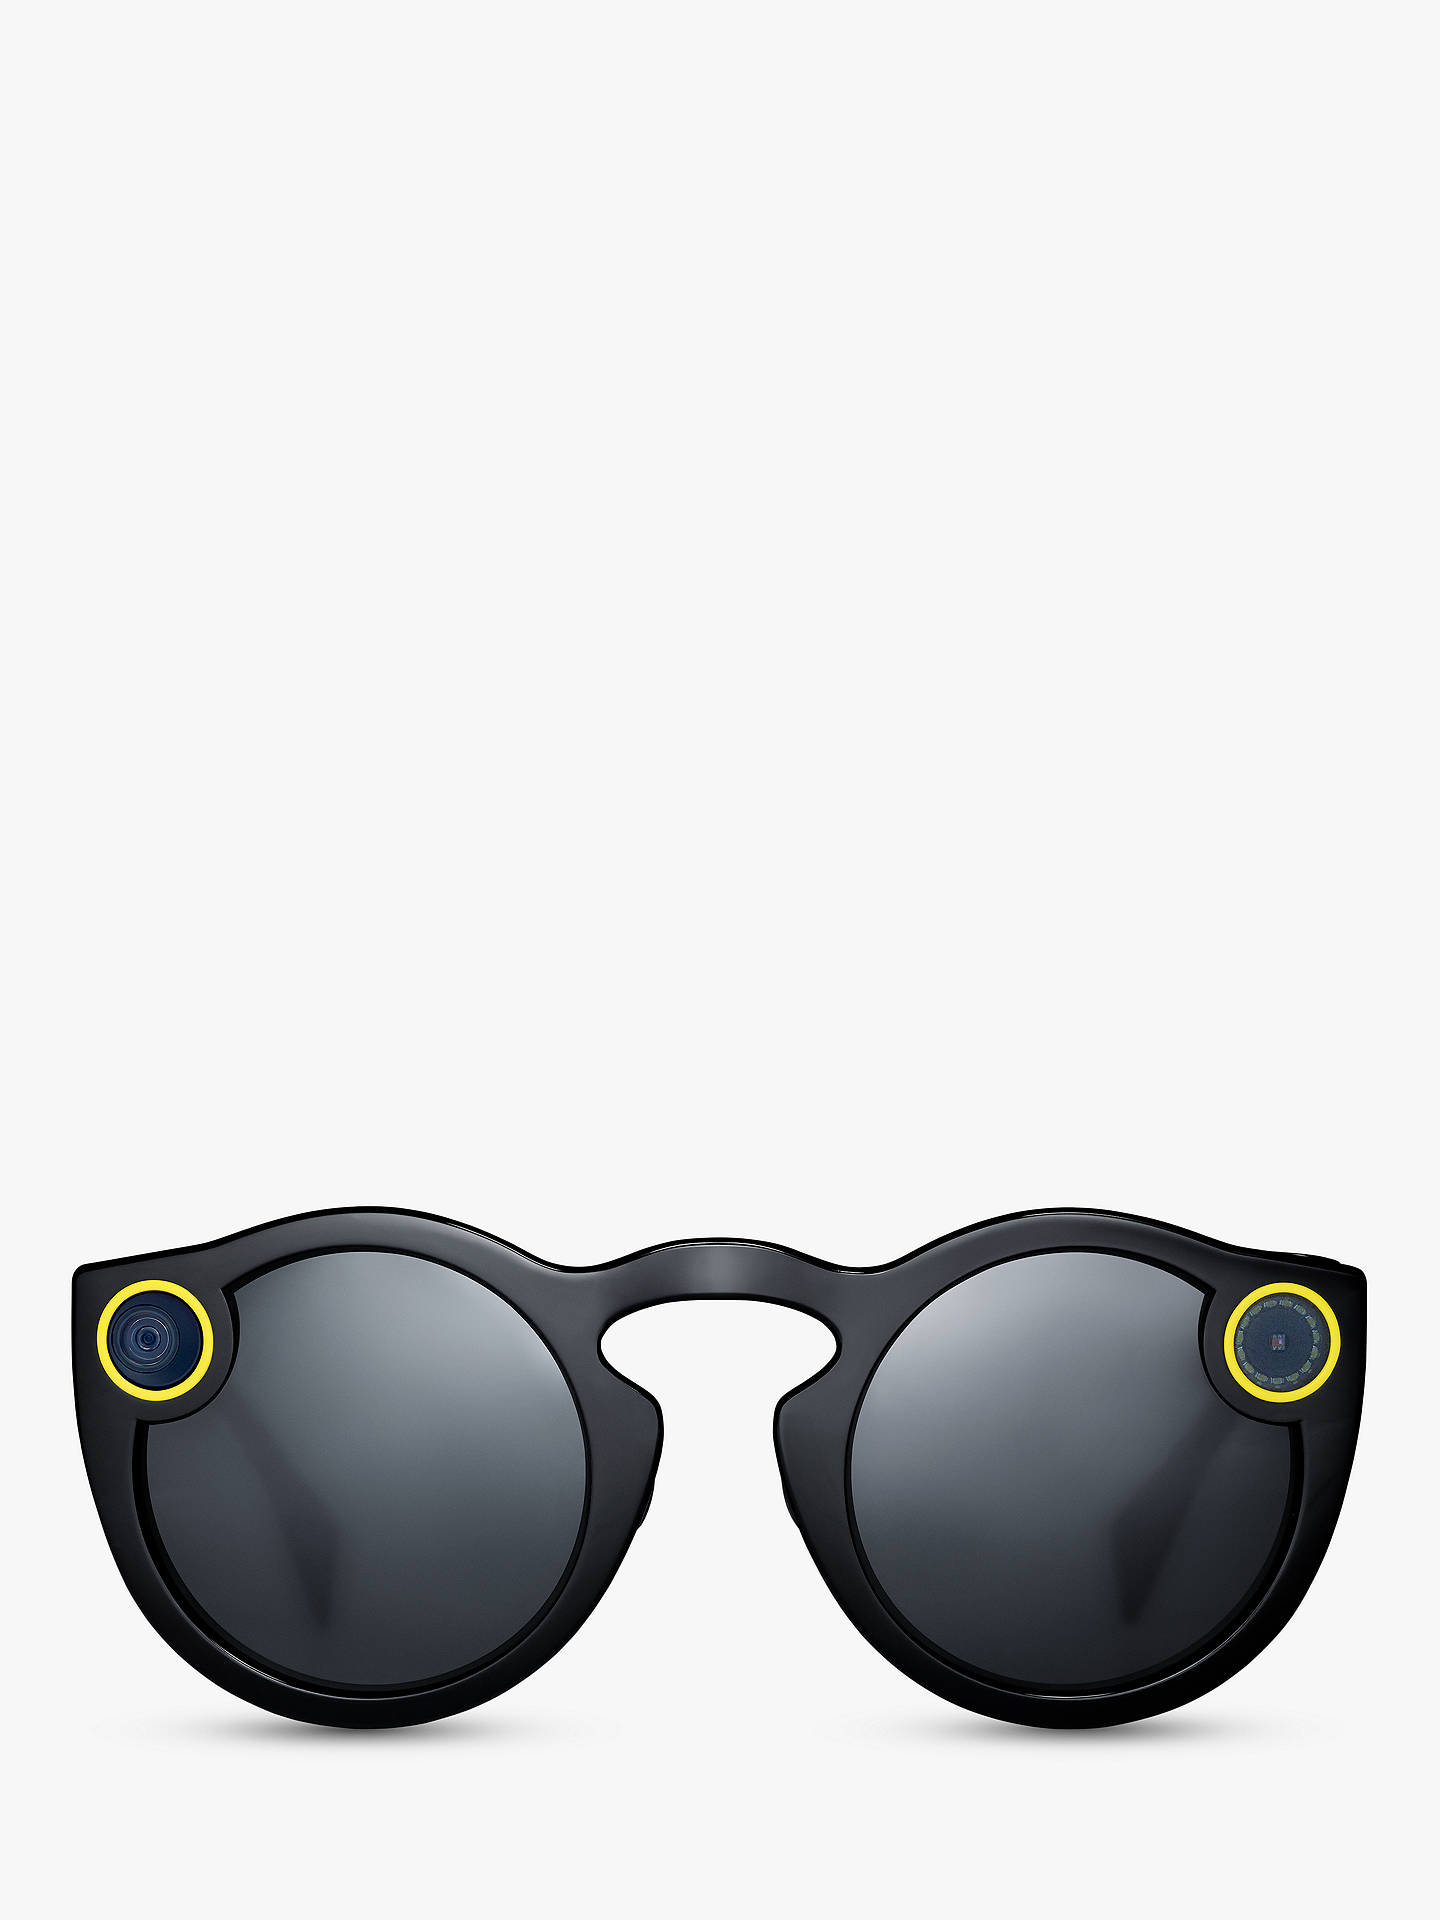 e61fe6a56197 Buy Snap Inc. Spectacles